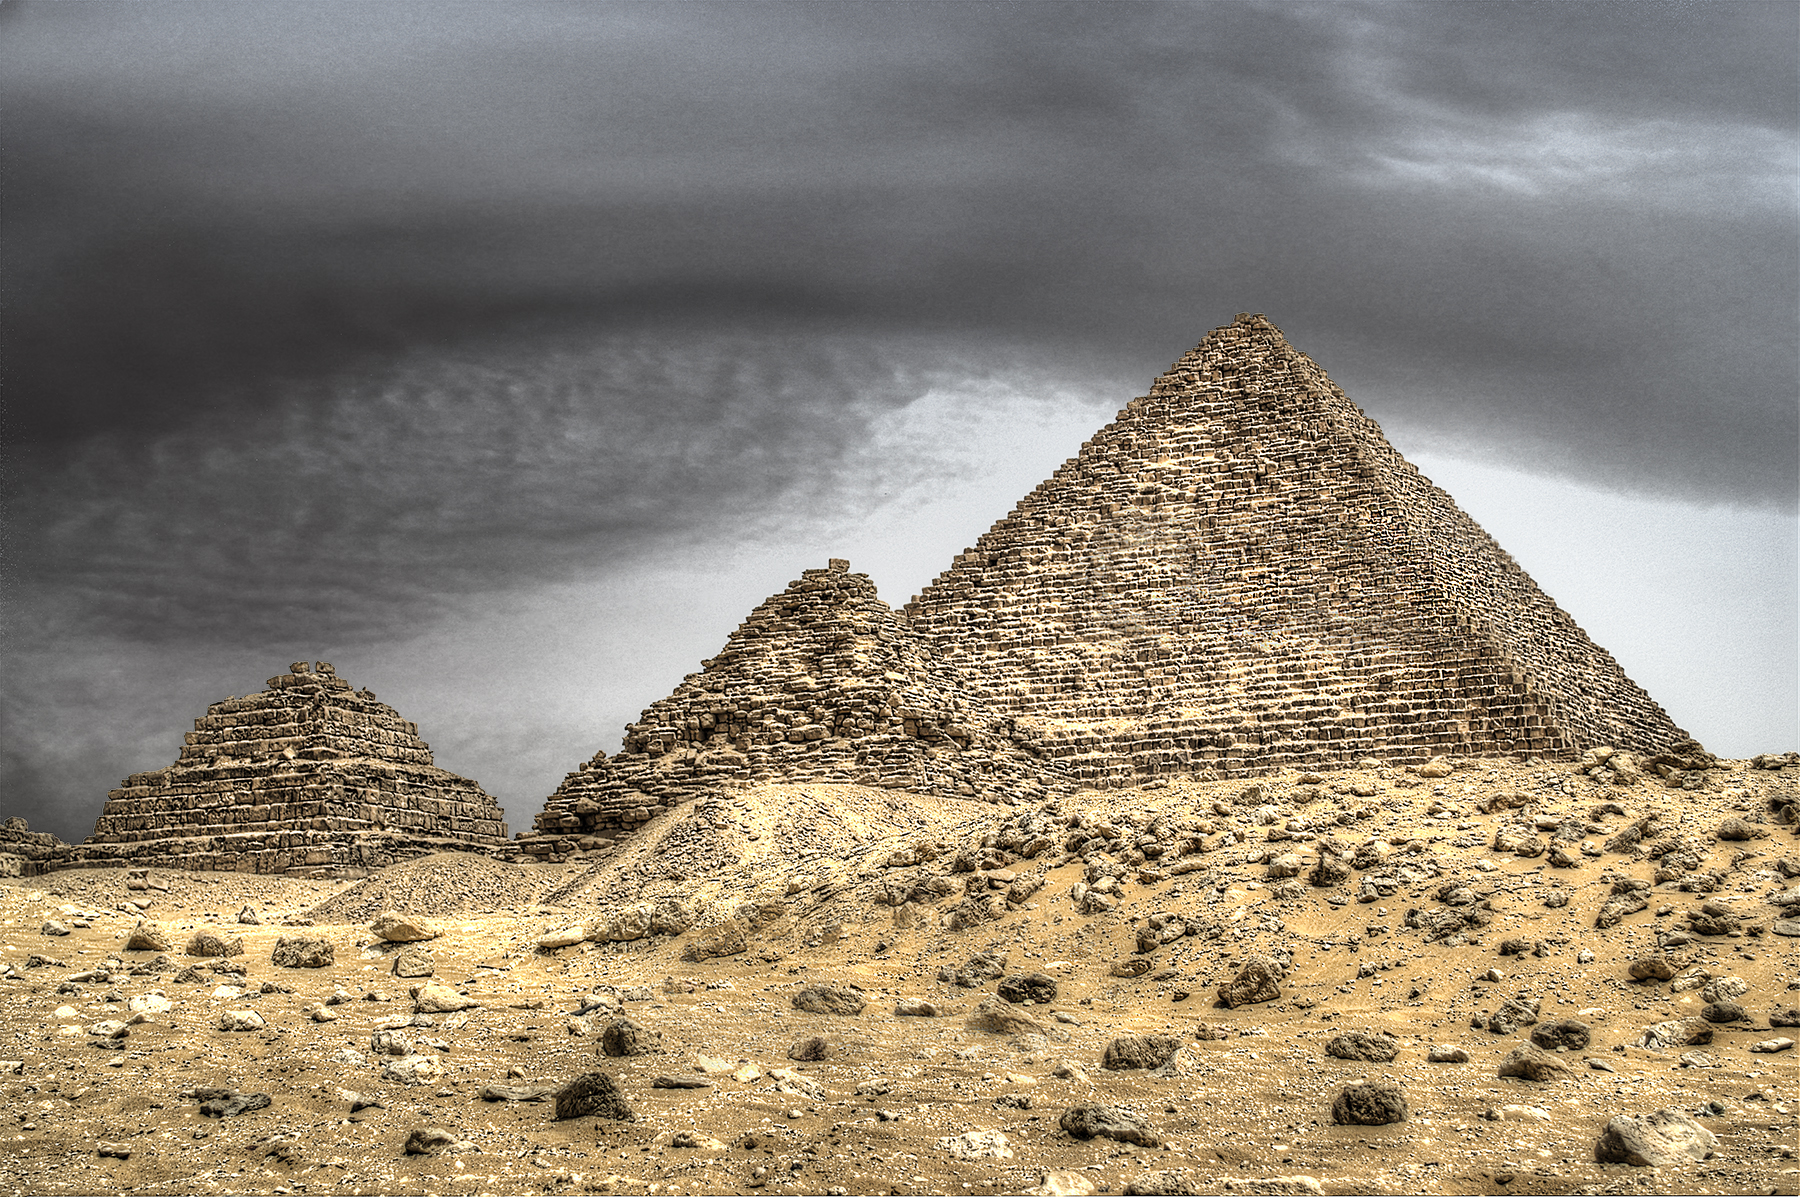 The Pyramid of Menkaure.